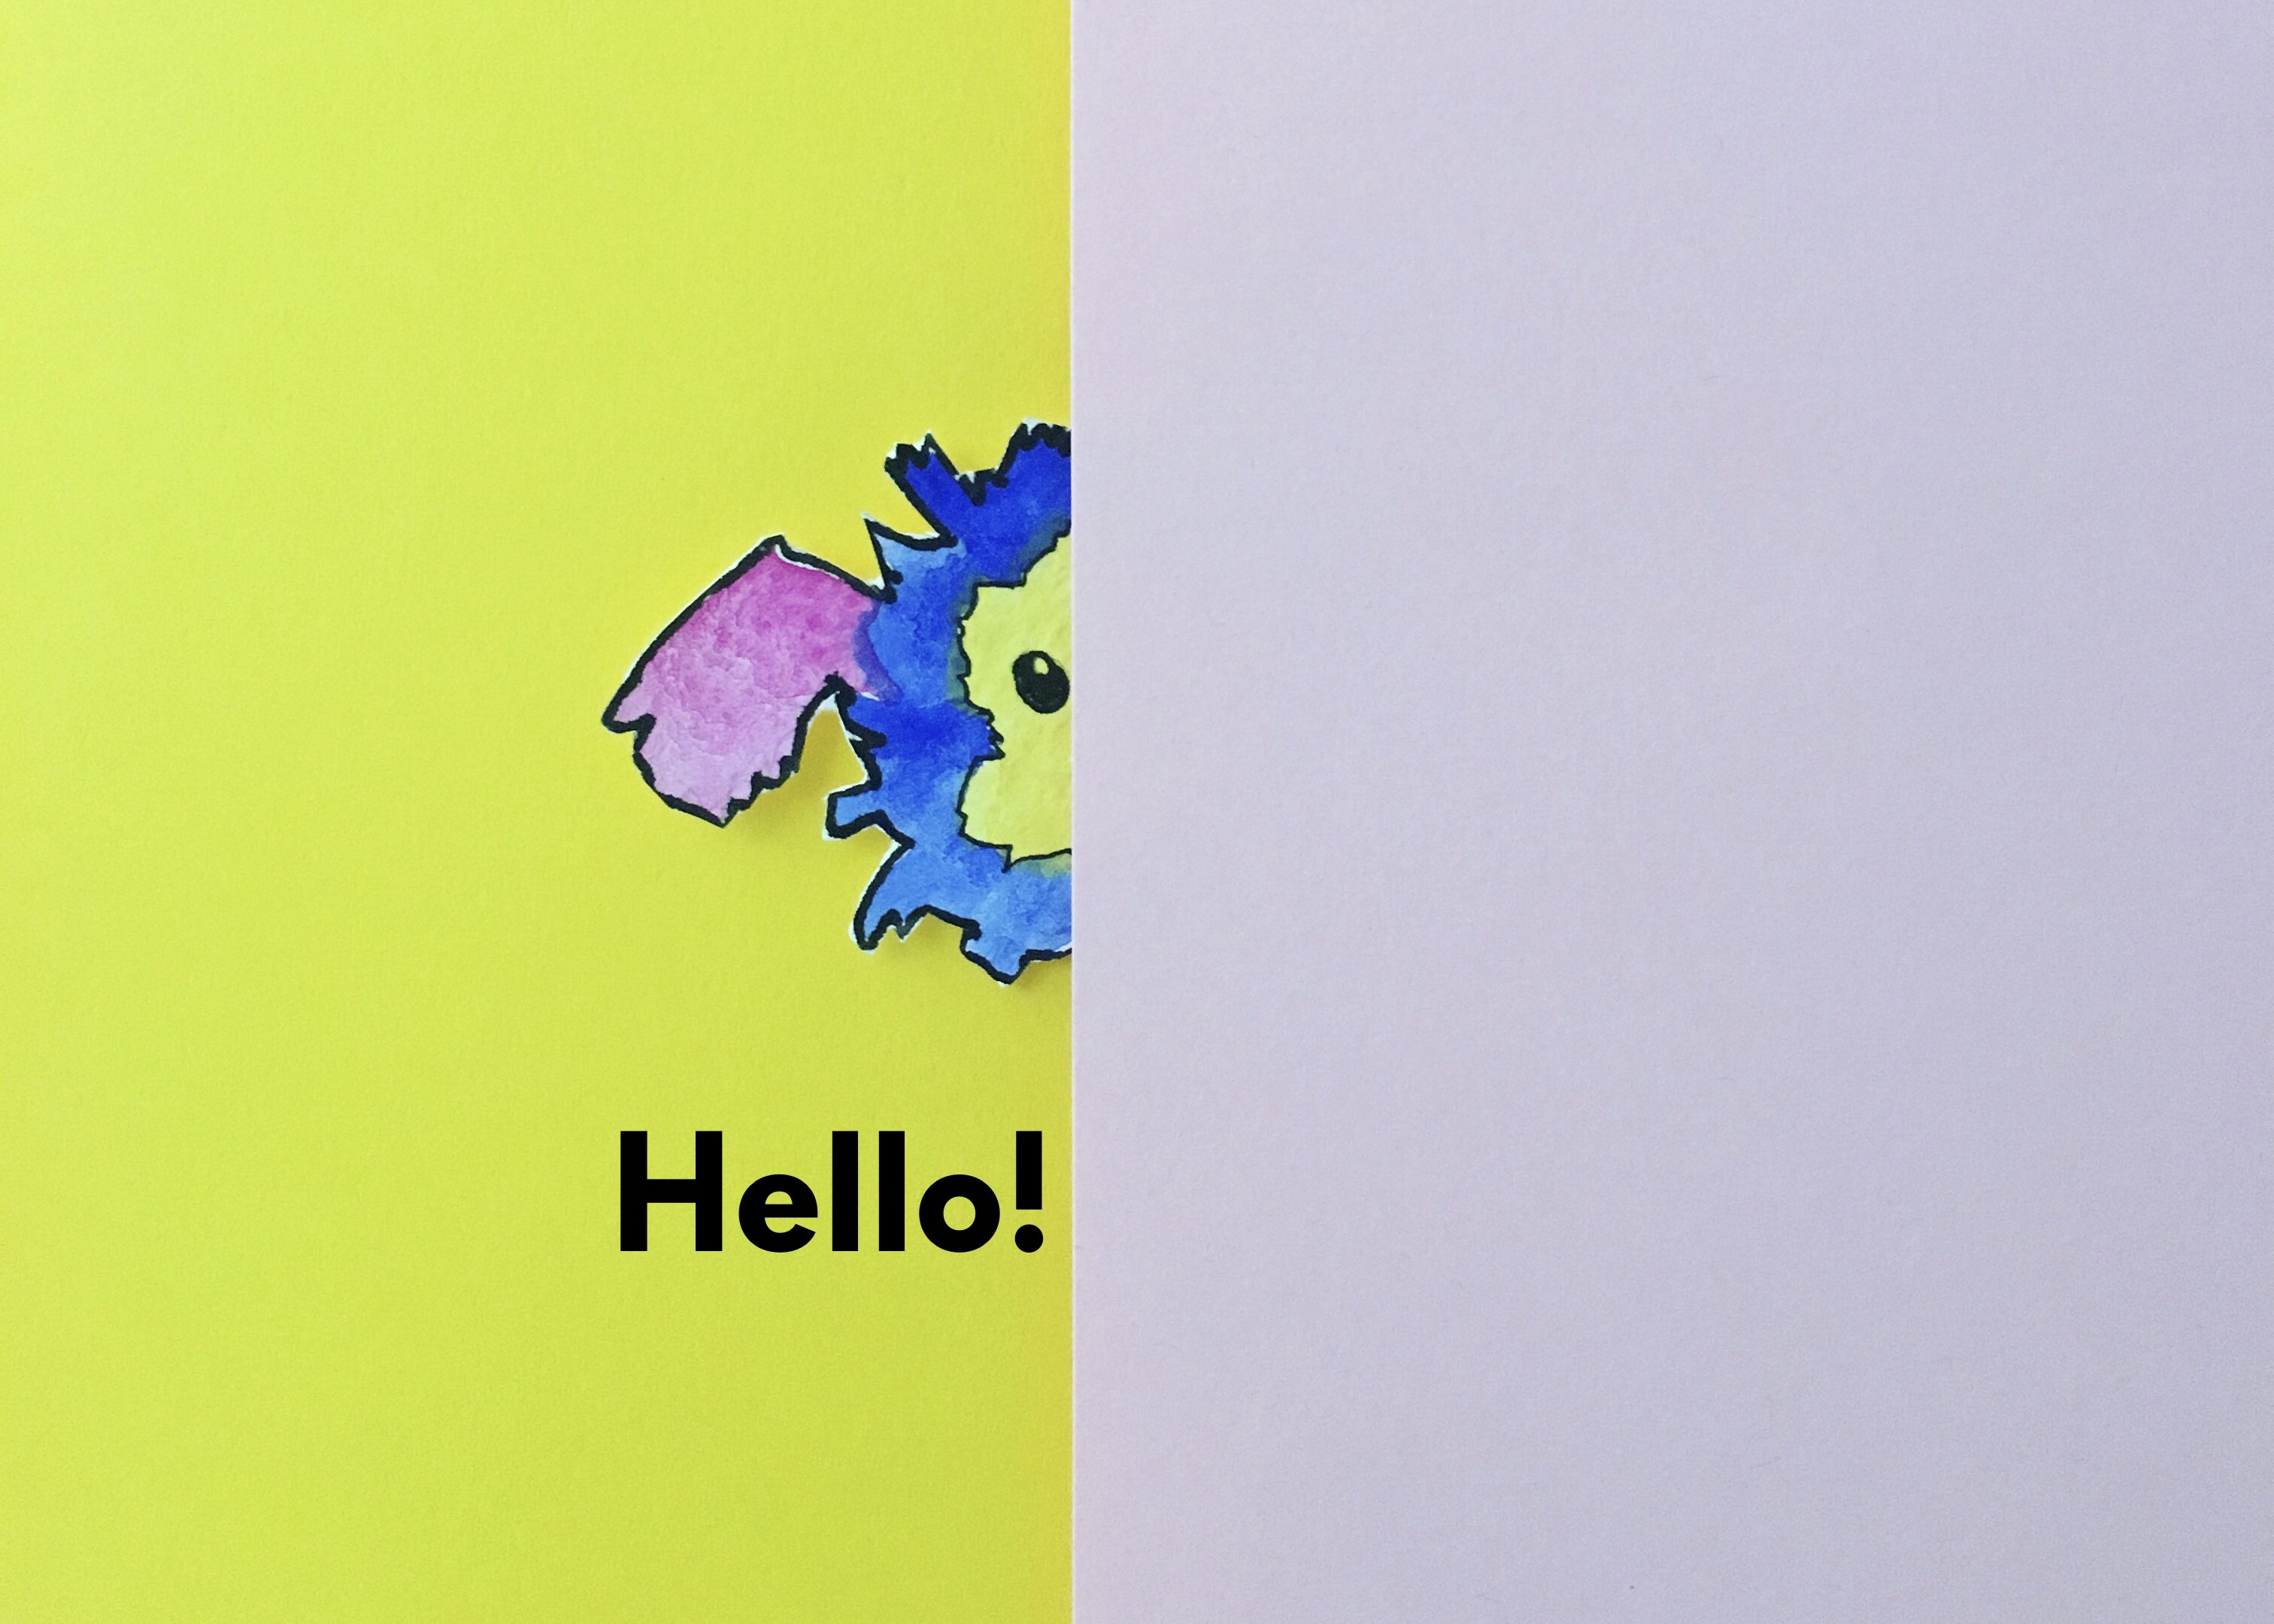 "Half of Marabou's head peeks out behind a white sheet of paper, and text below says ""Hello!"" Marabou has floppy purple ears, a fluffy blue head, and a yellow face with beady eyes."